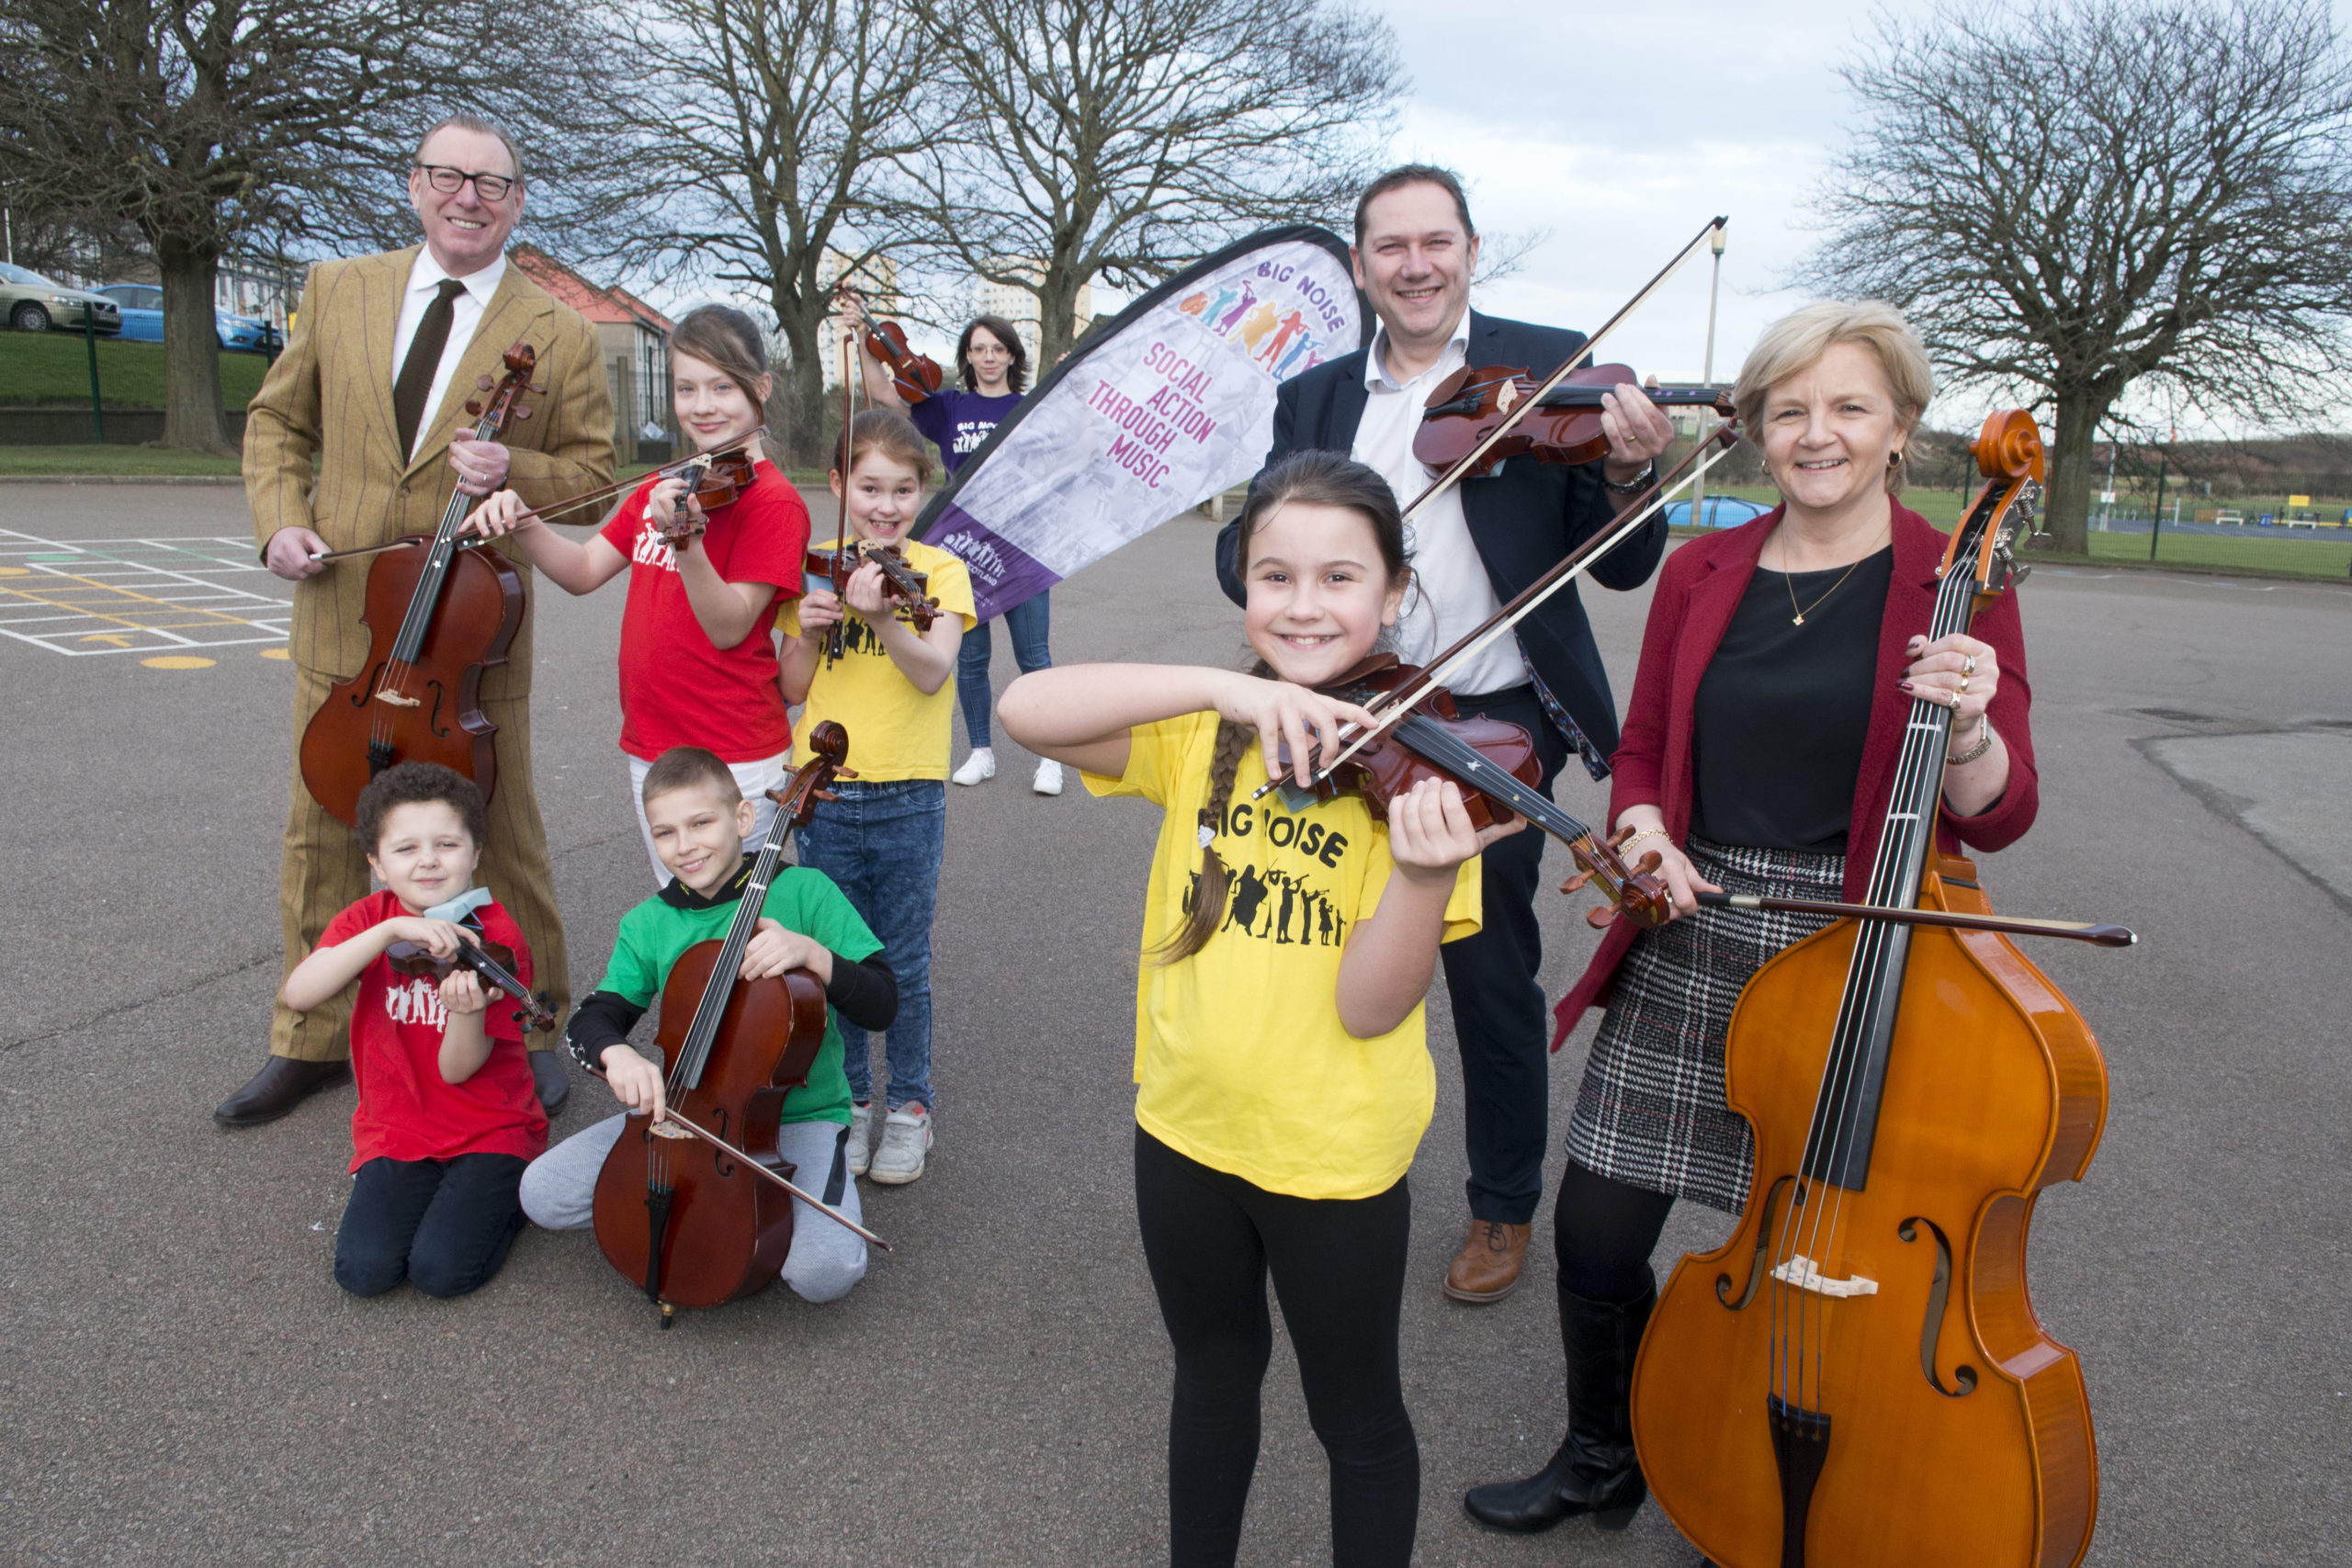 L-R: Benny Higgins, Councillor Douglas Lumsden and Councillor Jenny Laing with children from Big Noise Torry.